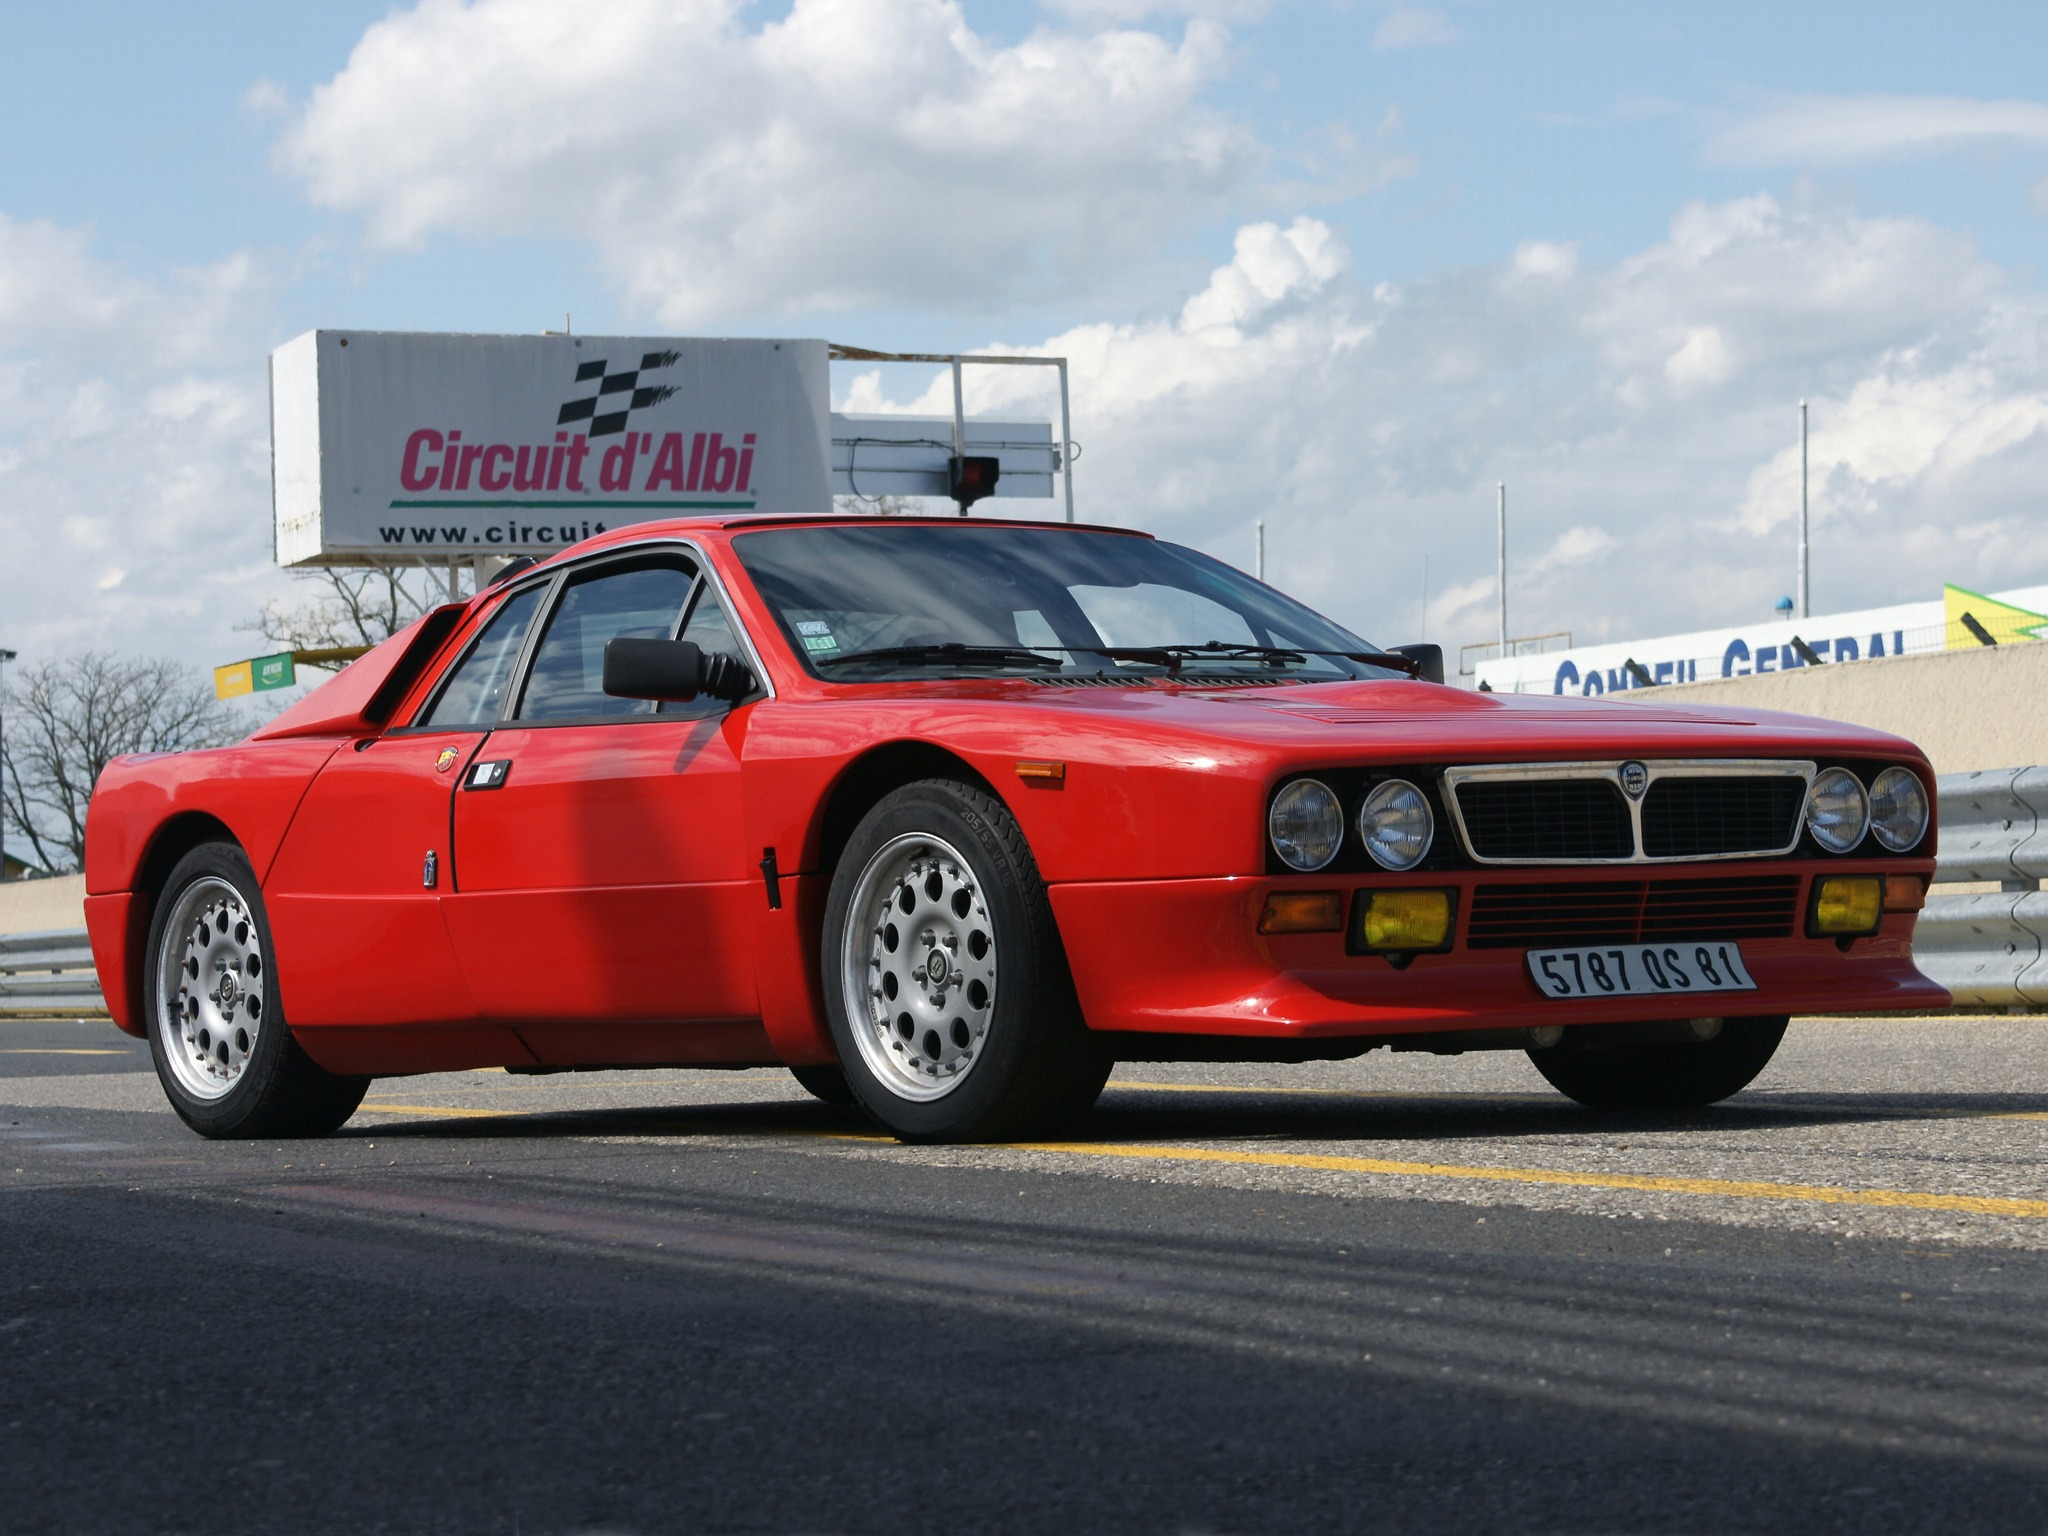 http://oldconceptcars.com/wp-content/uploads/lancia_rally_037_stradale_concept_4.jpg